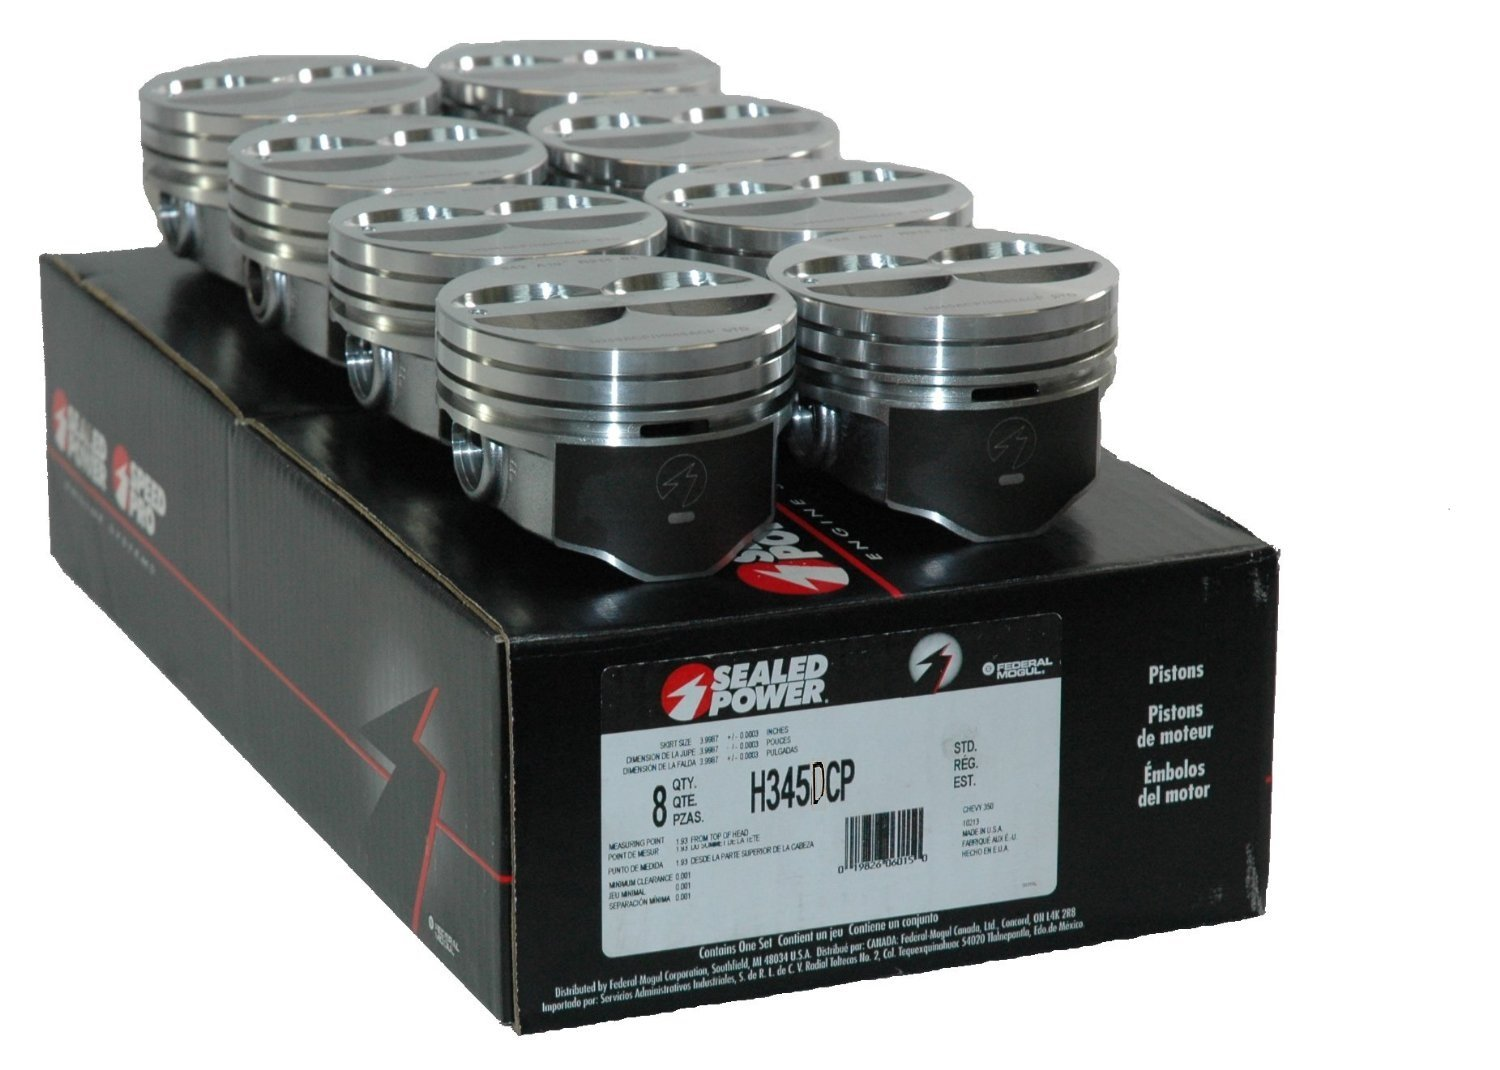 Speed Pro H345DCP 350 Small Block Chevy SBC Flat Top Pistons Coated Piston 5.7' (.030' or 4.030' Bore) Sealed Power